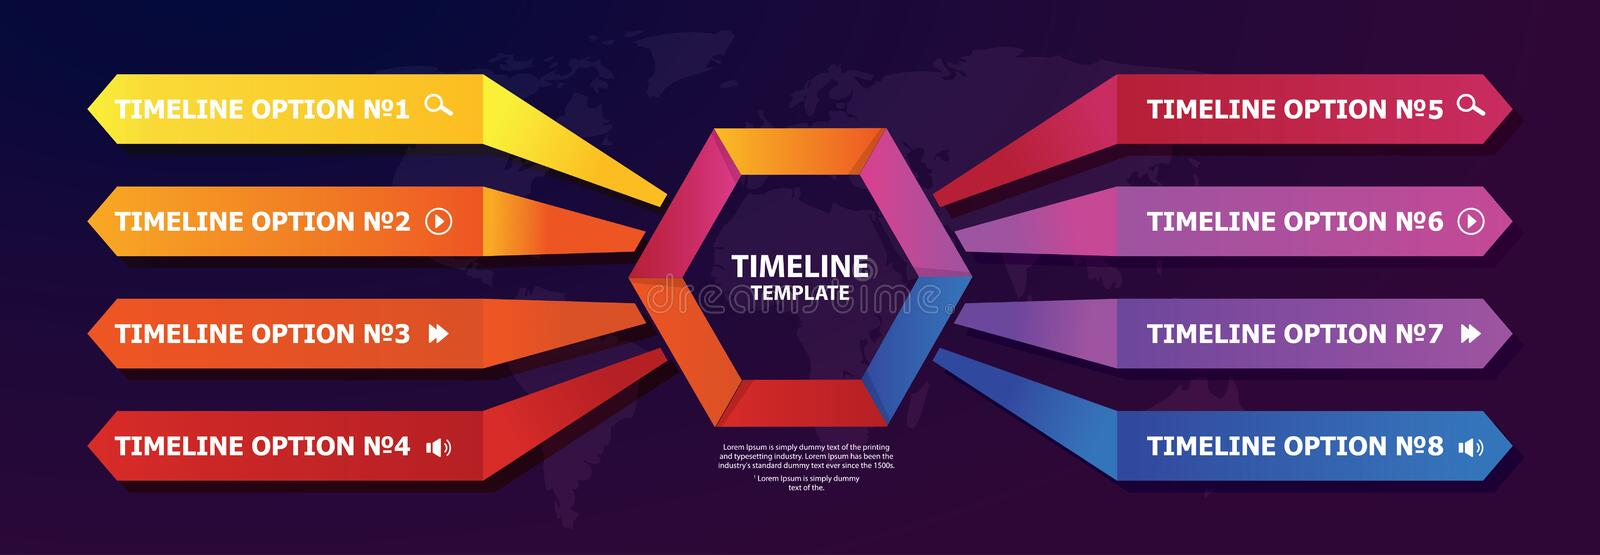 Timeline vector infographic for steps and option for marketing presentation, business reports, data visualisation, quality layout royalty free illustration